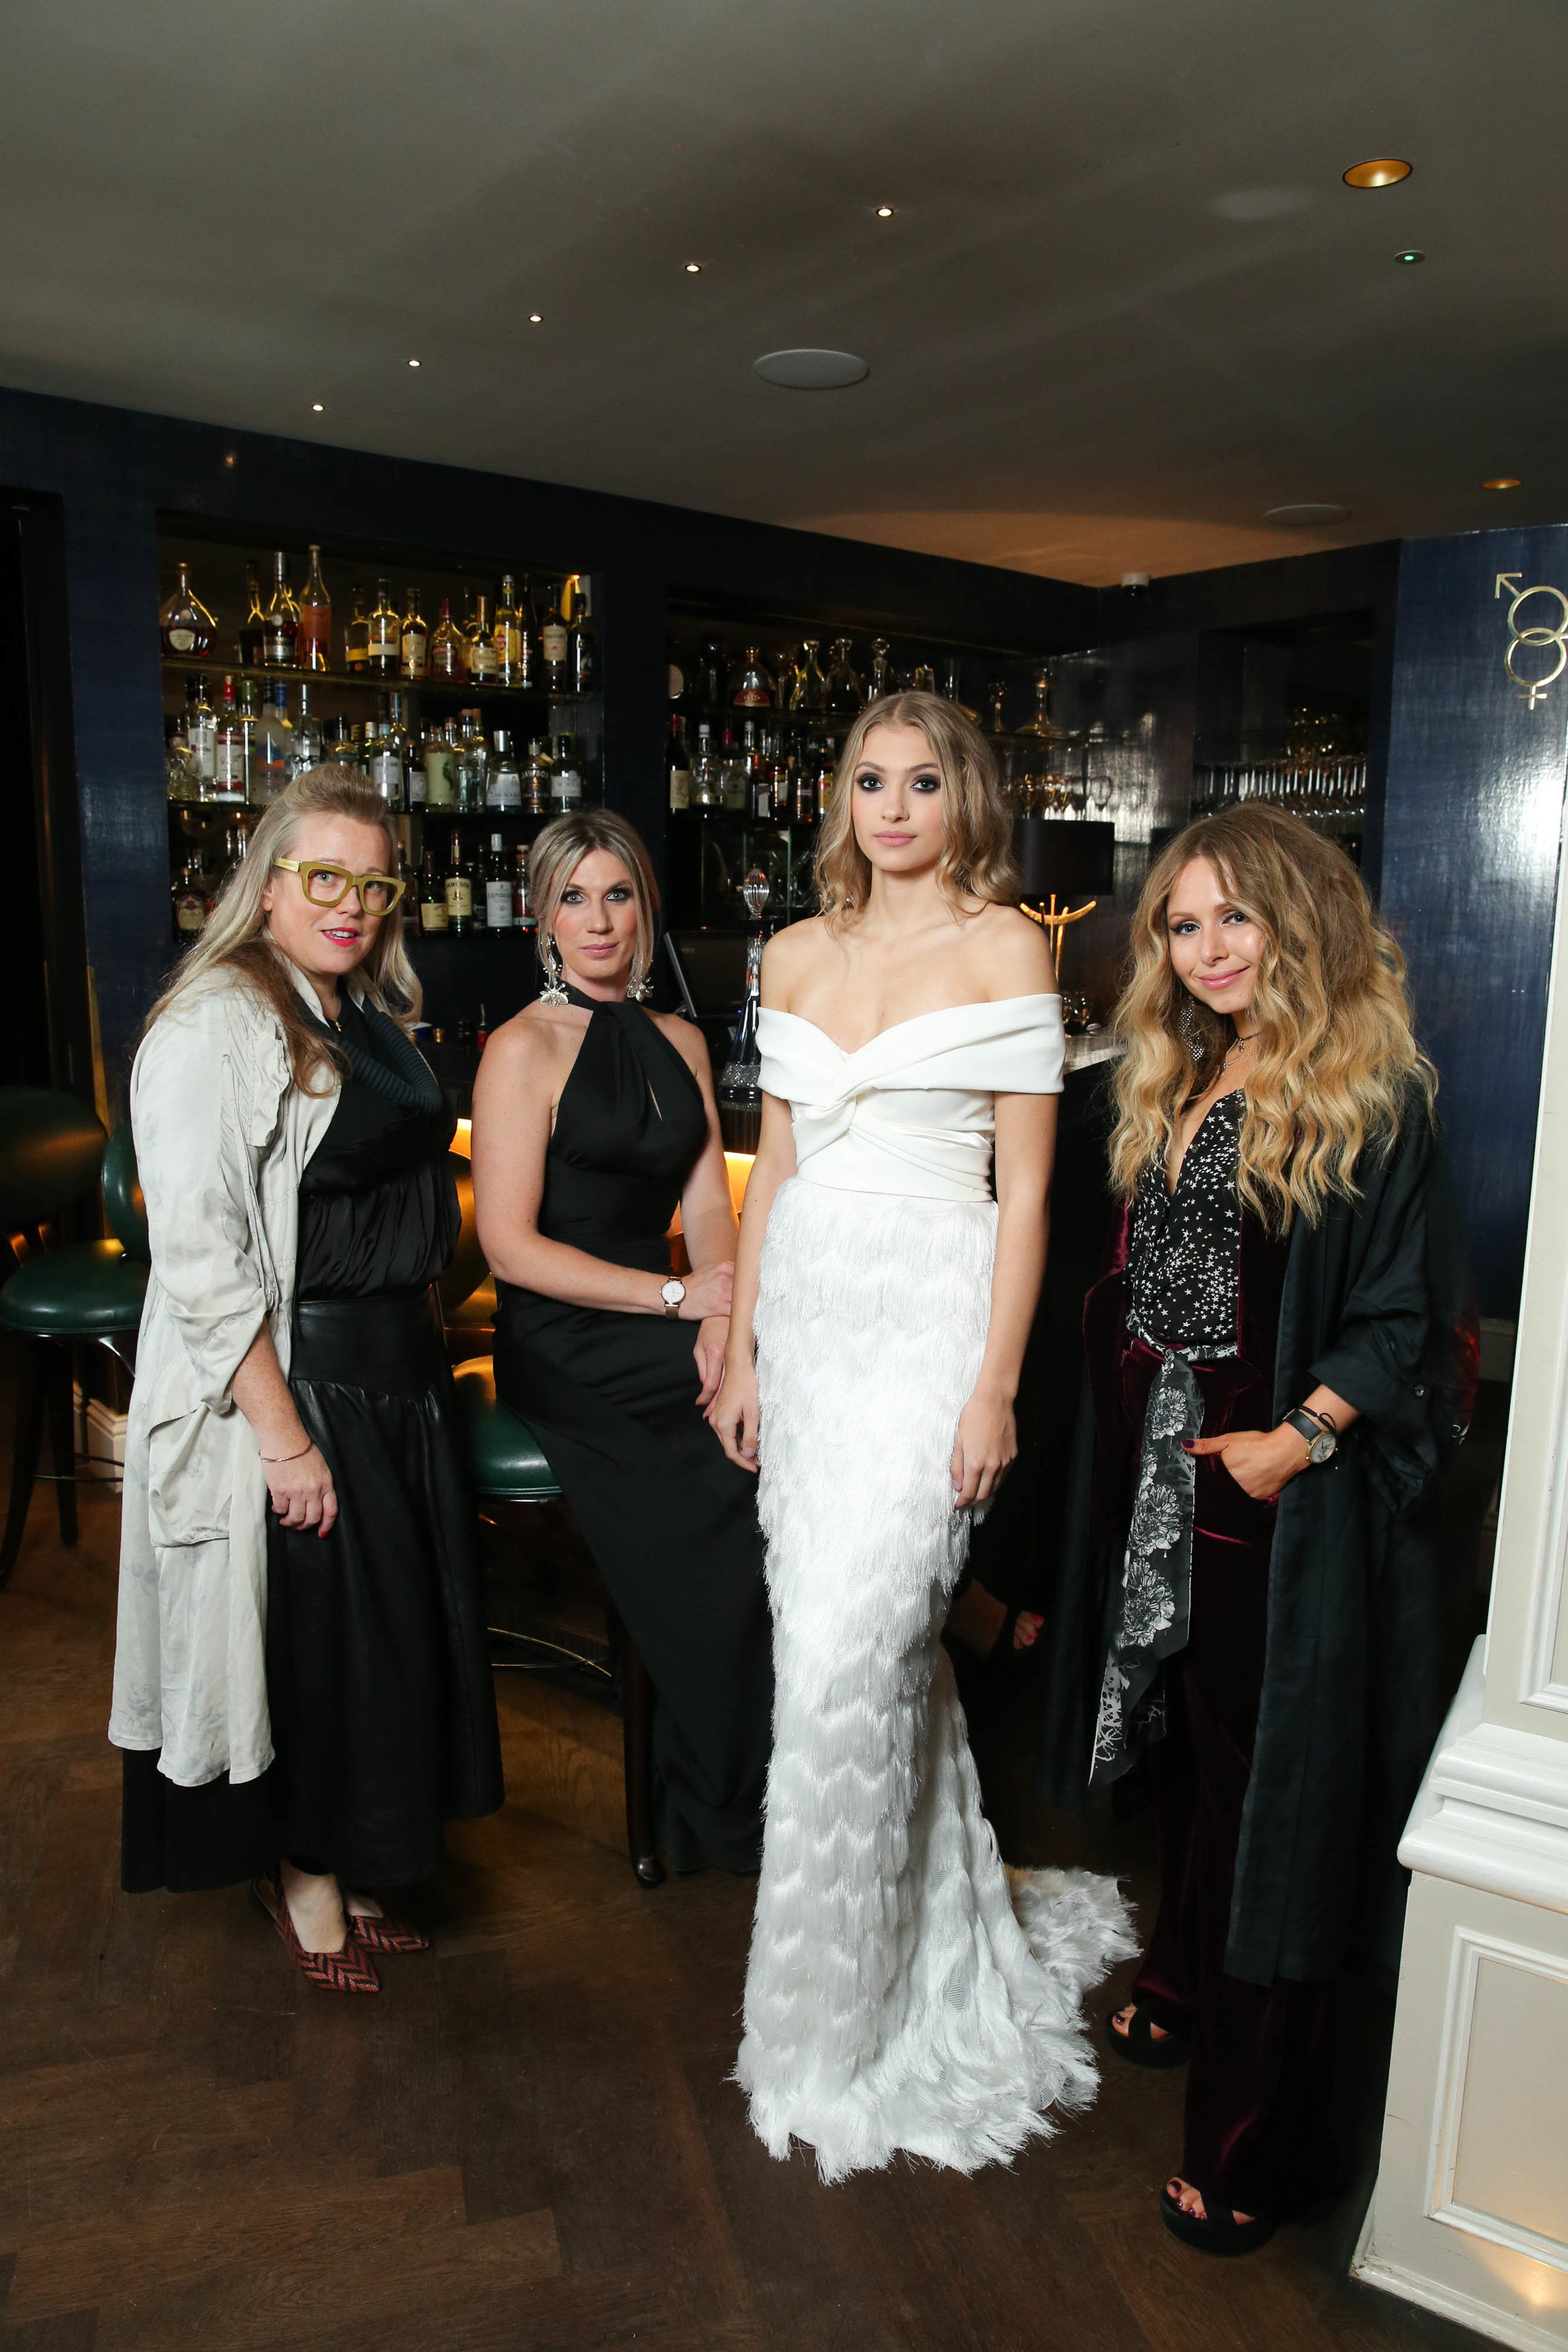 Pictured is Kate Halfpenny from Halfpenny London; model Victoria Bustard wearing Halfpenny London; Founder of The White Gallery, Rachel Morgan and Sara O'Neill, fashion designer and illustrator.